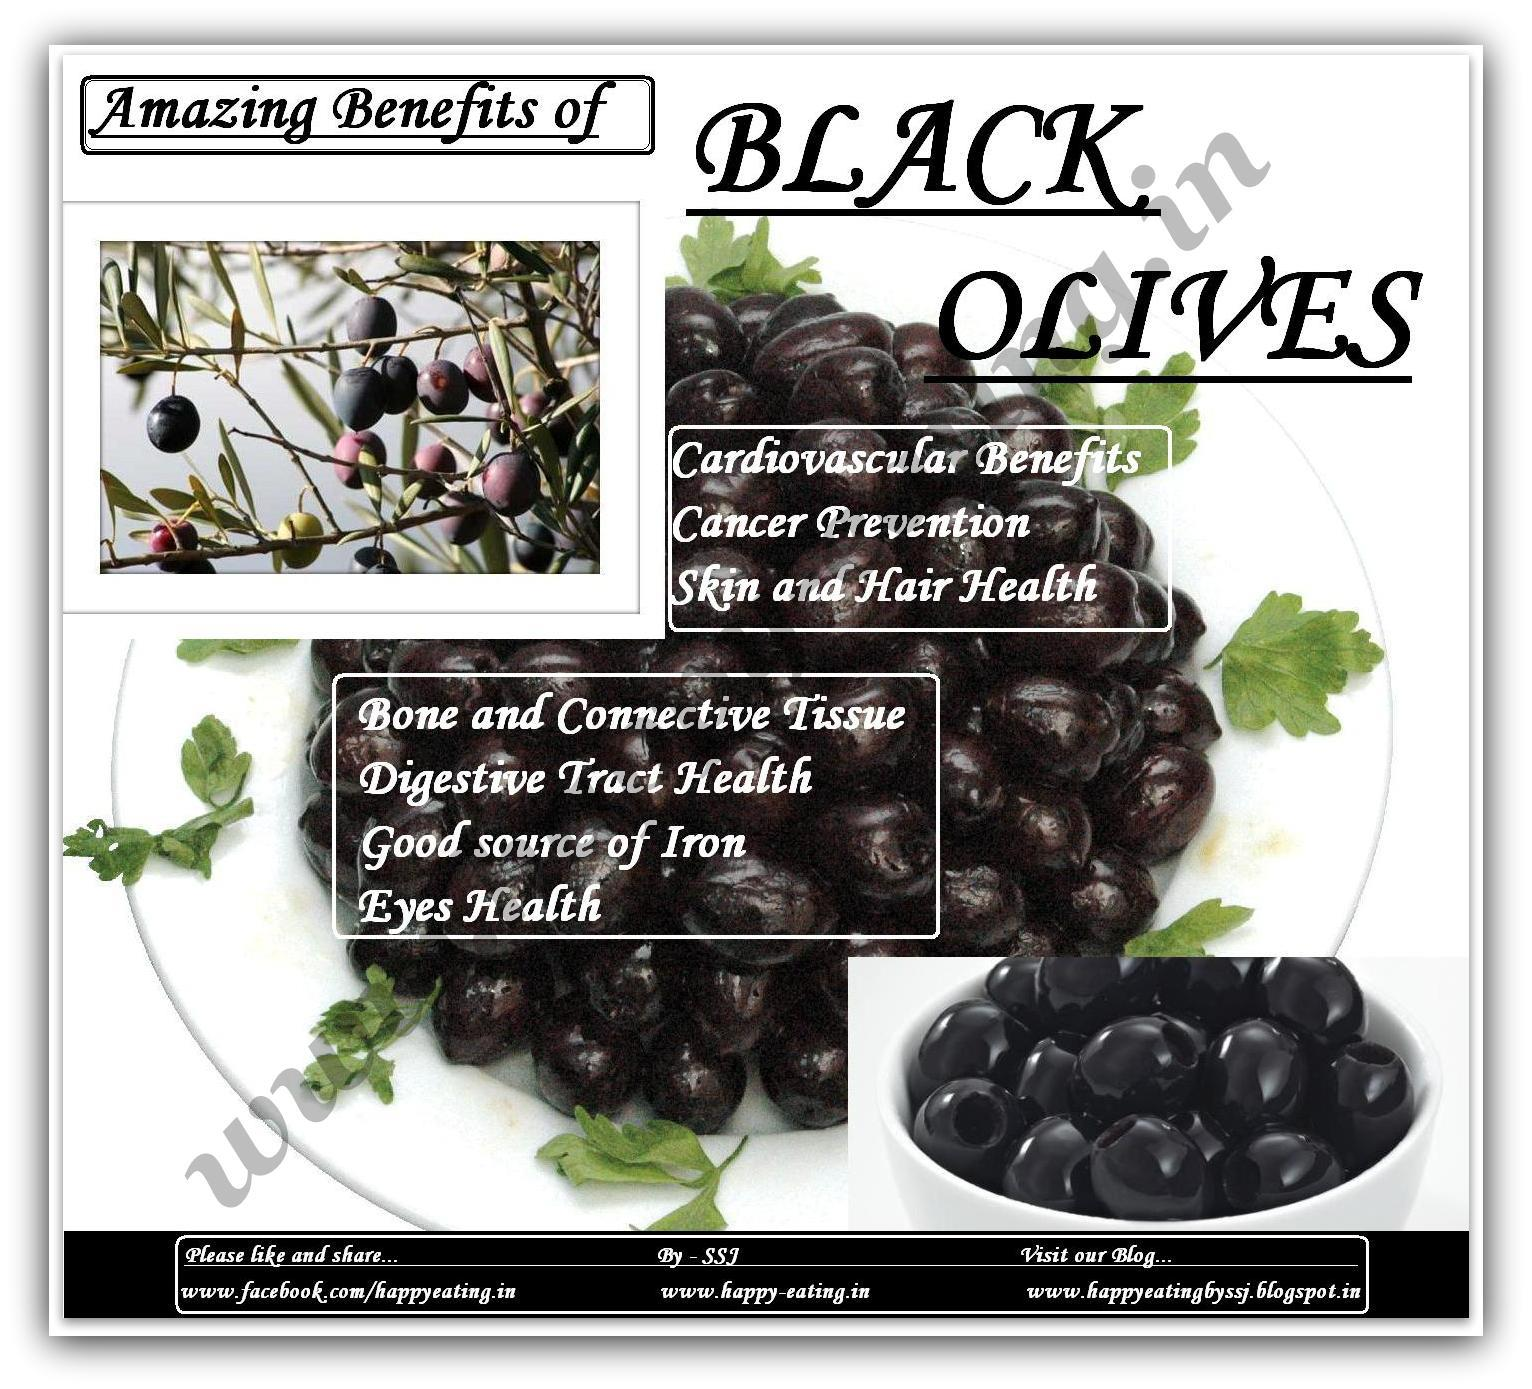 health Black benefits olives